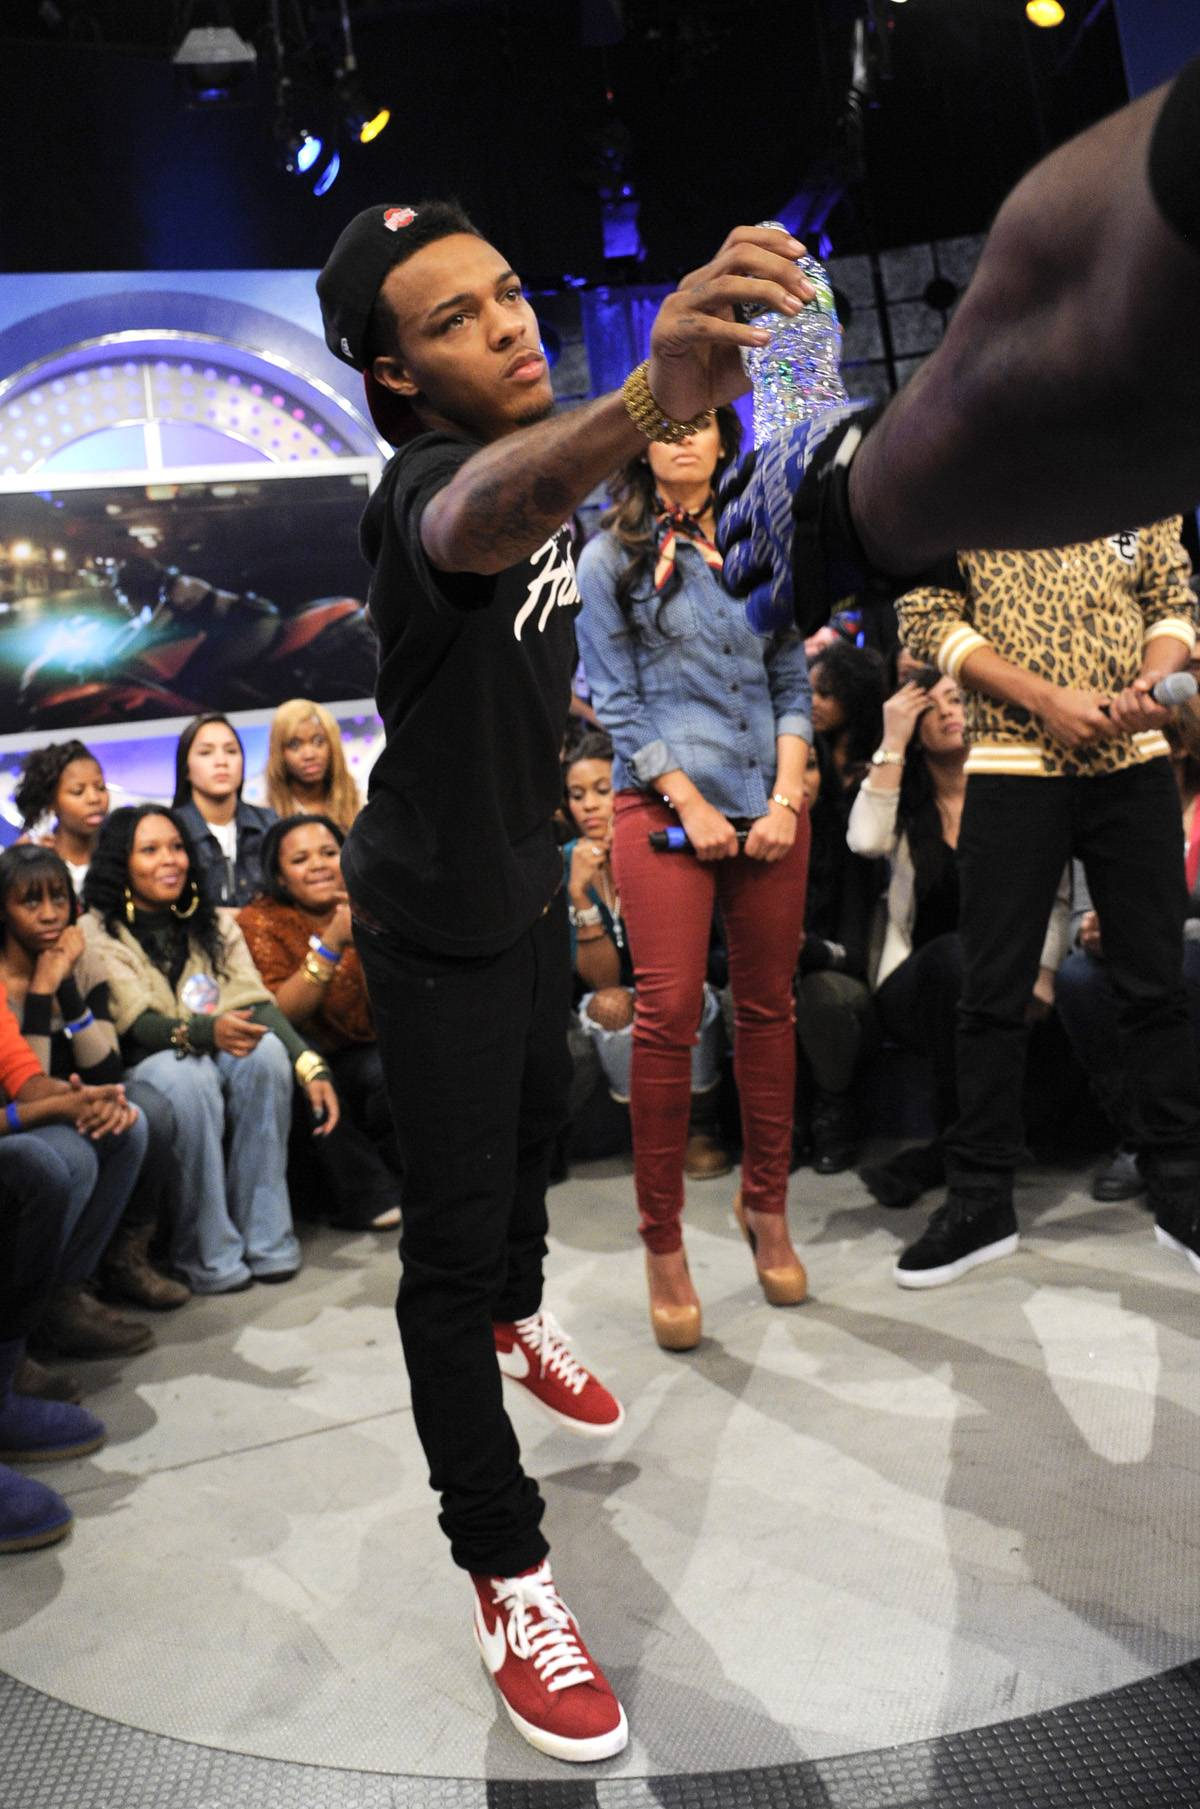 Reach Out and Touch - Bow Wow during a commercial break at 106 & Park, January 23, 2012. (Photo: John Ricard / BET)